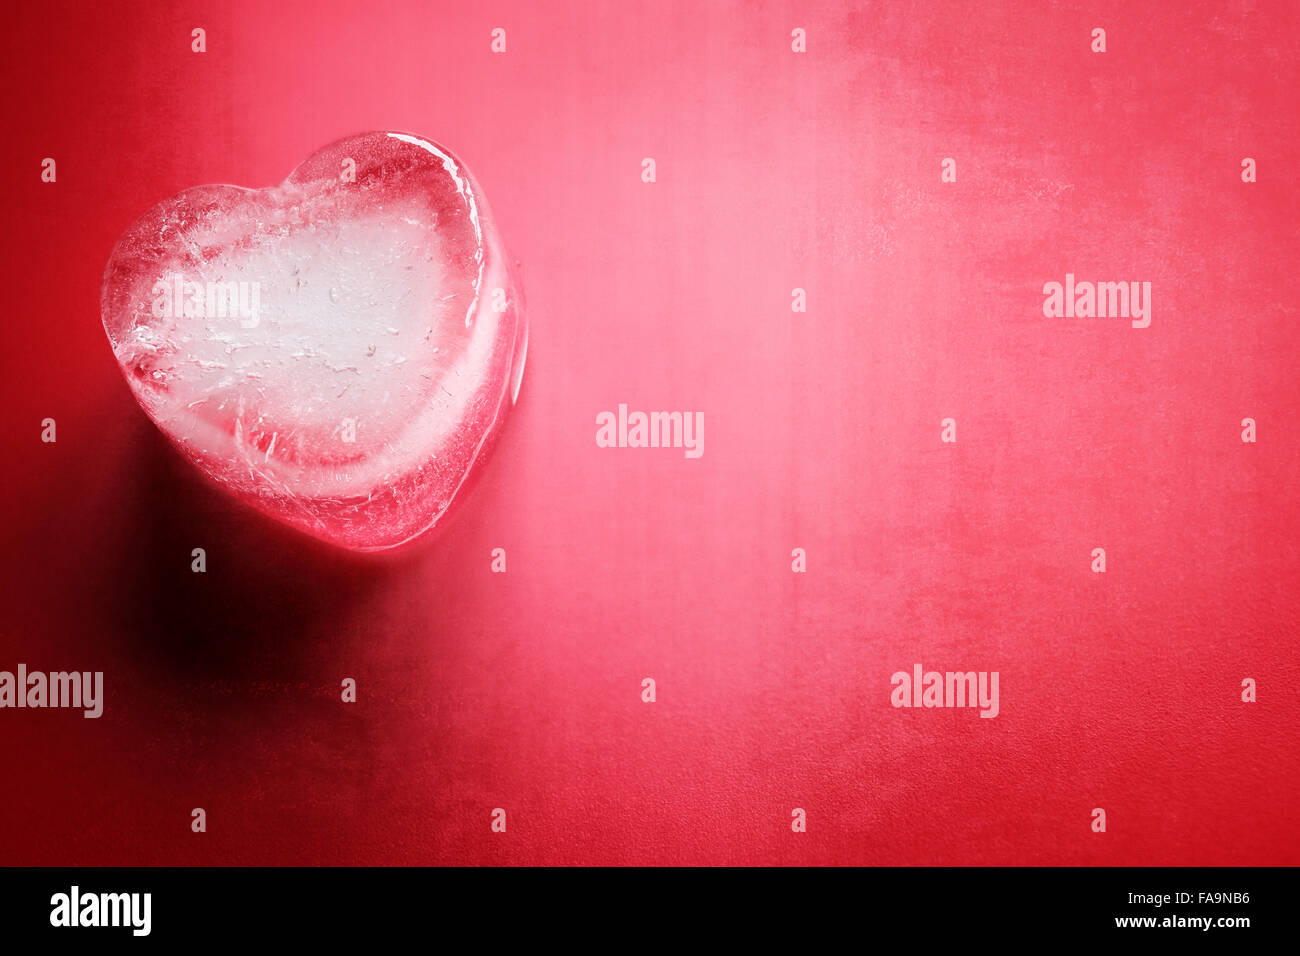 Frozen heart background - Stock Image